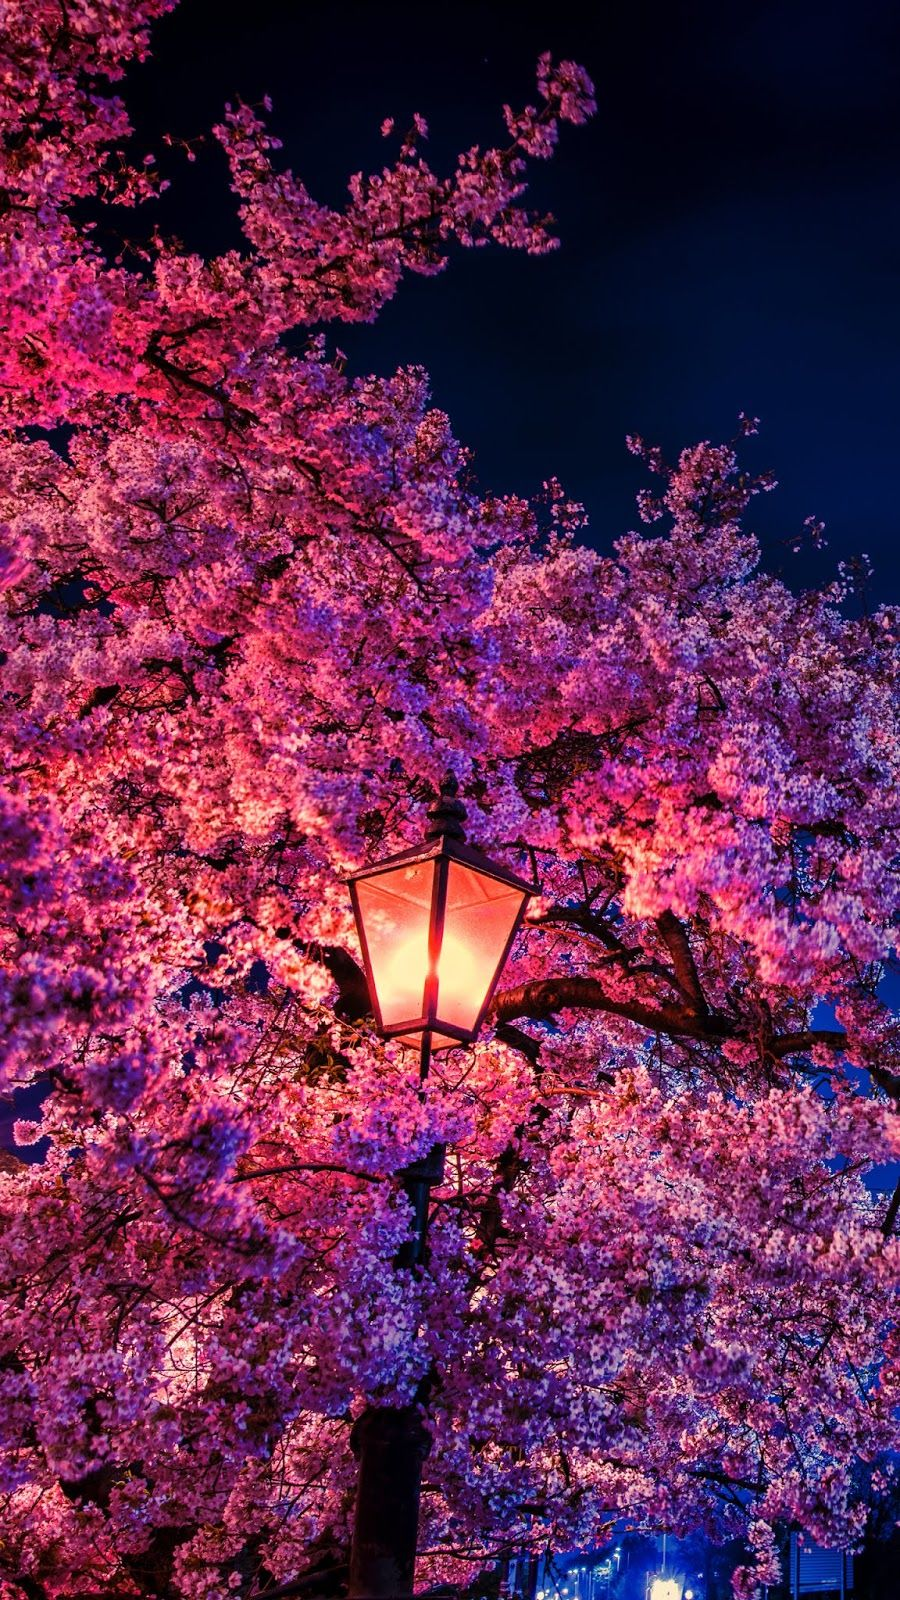 Cherry Blossom In The Night With Images Cherry Blossom Wallpaper Iphone Cherry Blossom Wallpaper Cherry Blossom Background